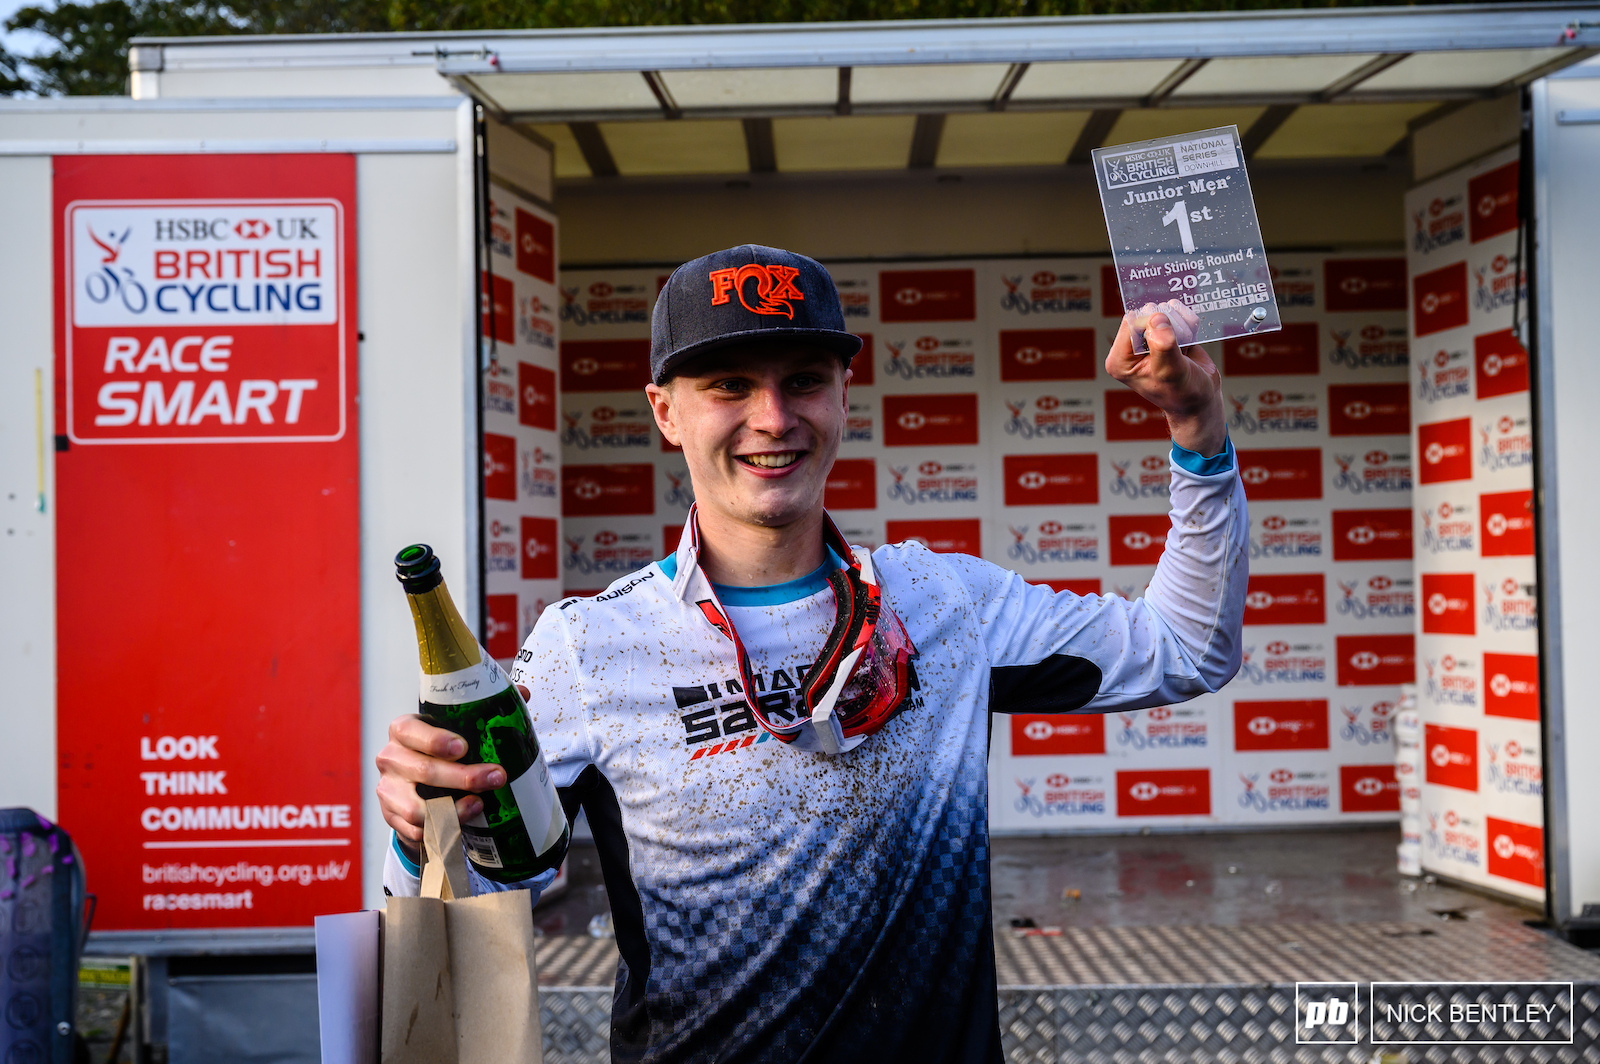 Jordan Williams backing up his first place at the World Cup with a National Series race win and taking home the overall Series Title - not a bad few weeks for the Madison Saracen Rider